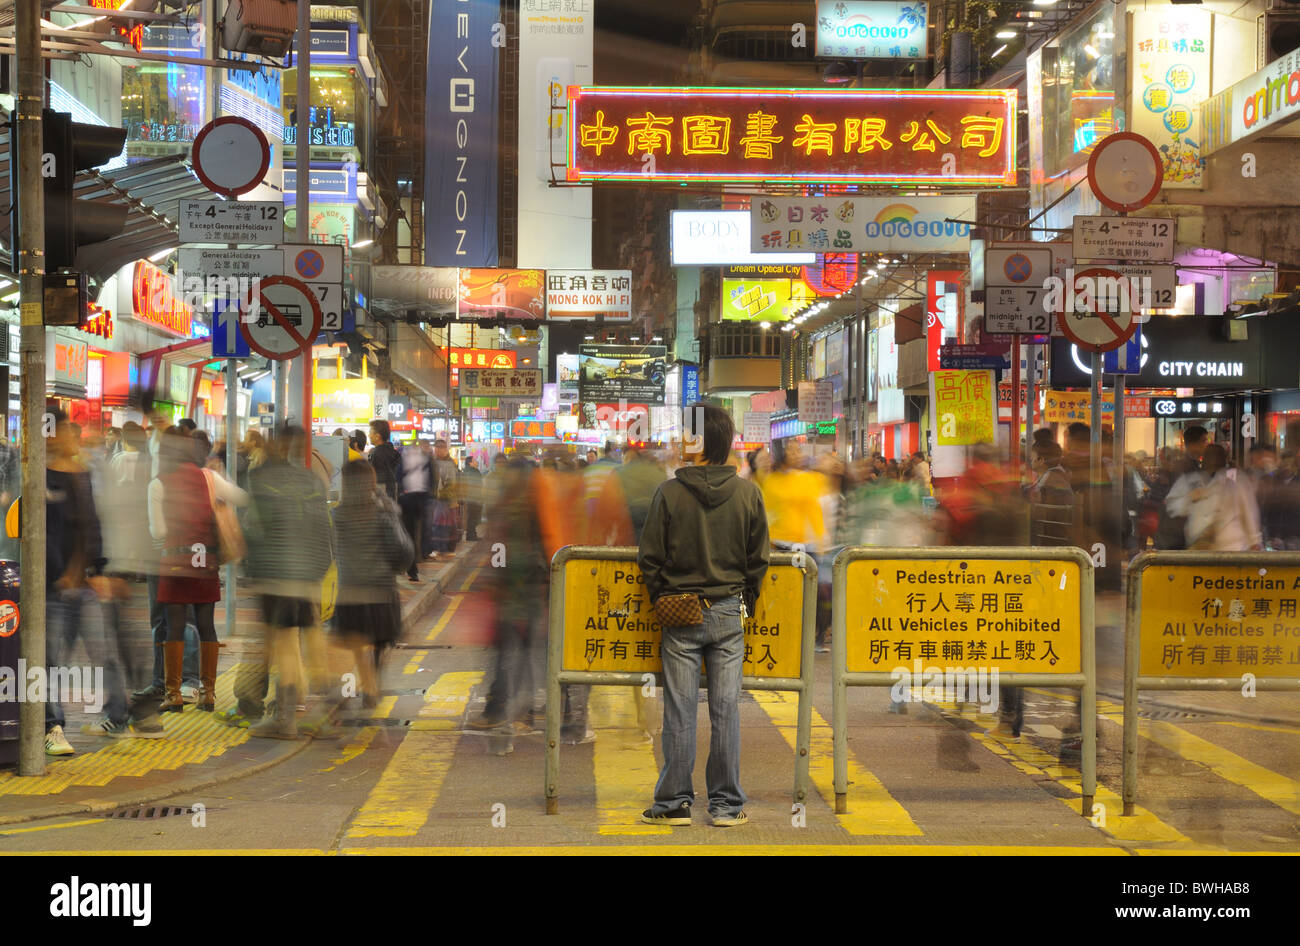 crowds-fill-hong-kongs-streets-shopping-for-chinese-new-year-BWHAB8.jpg